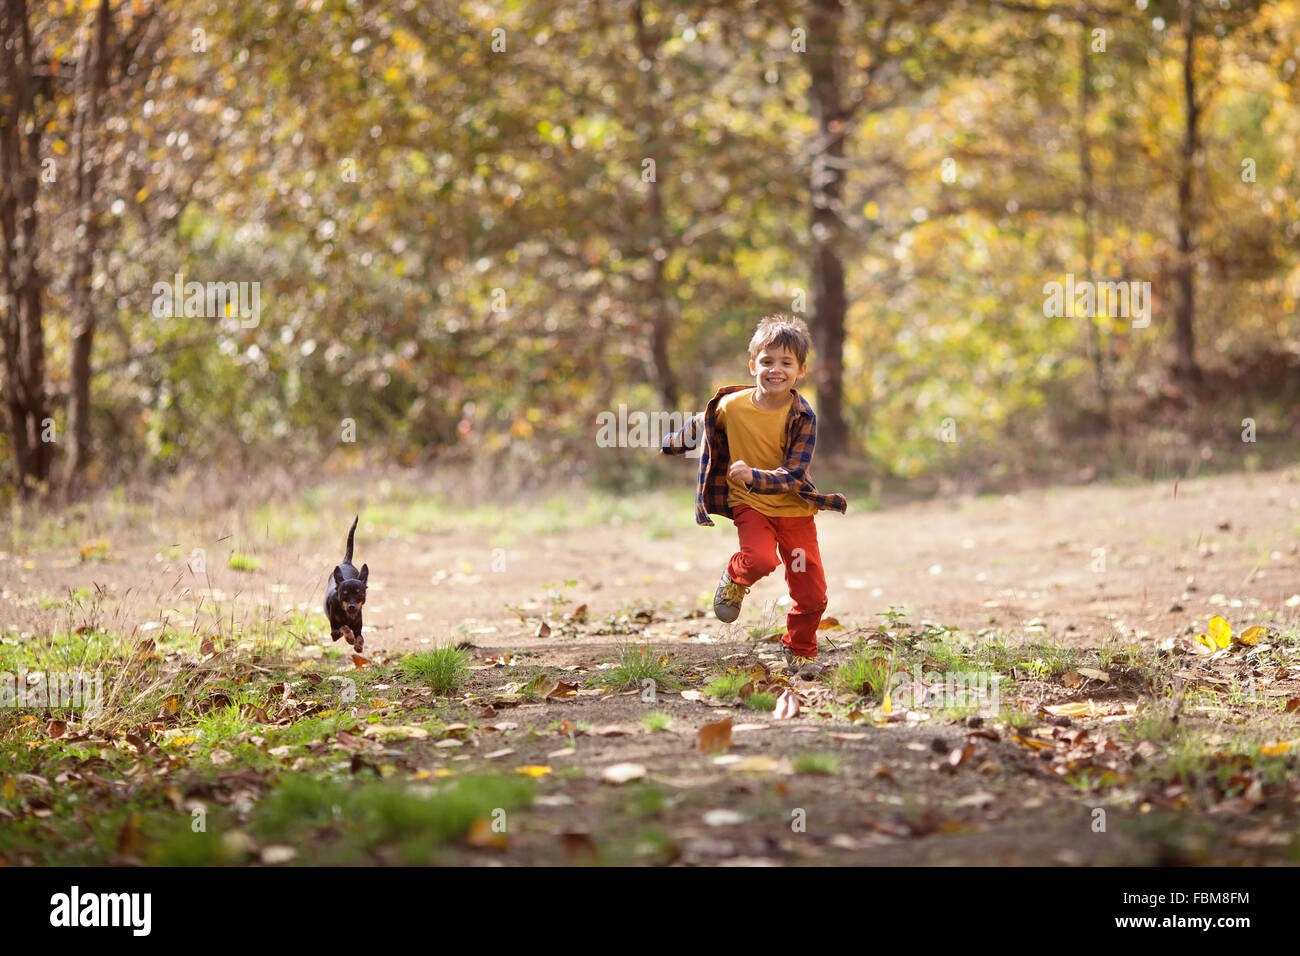 Boy chasing his puppy dog in the forest - Stock Image